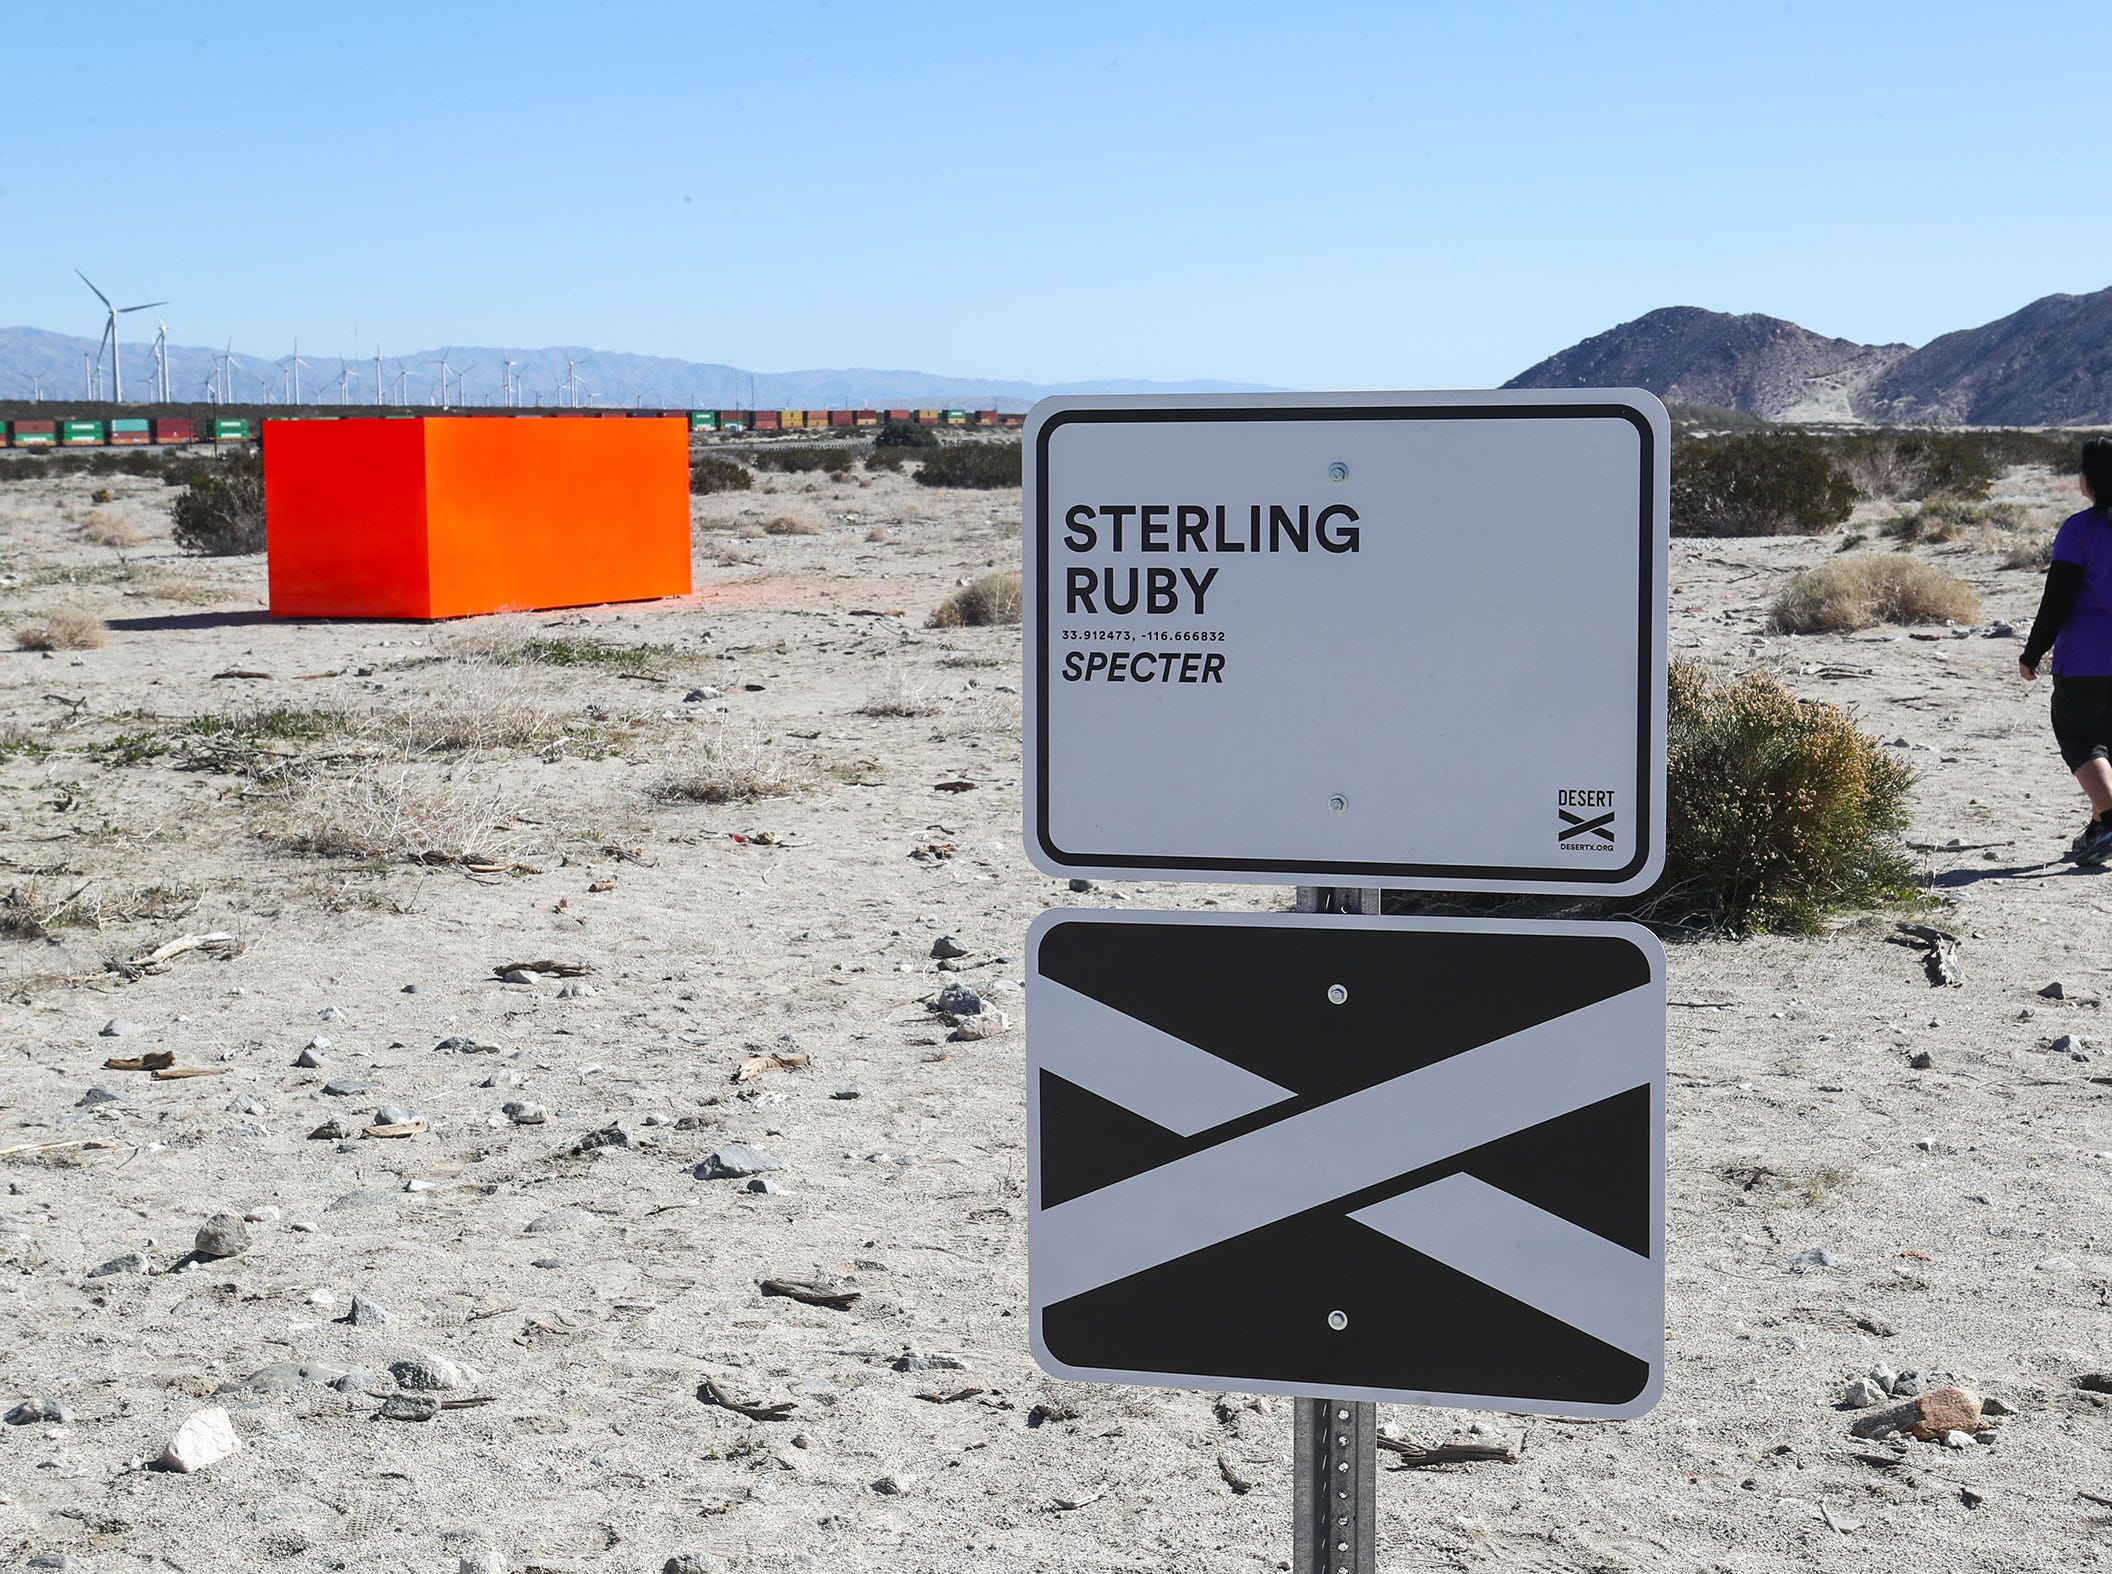 """Specter"" by Sterling Ruby is one of the Desert X art installations near Snow Creek Road and Hwy 111 in Palm Springs, February 11, 2019."